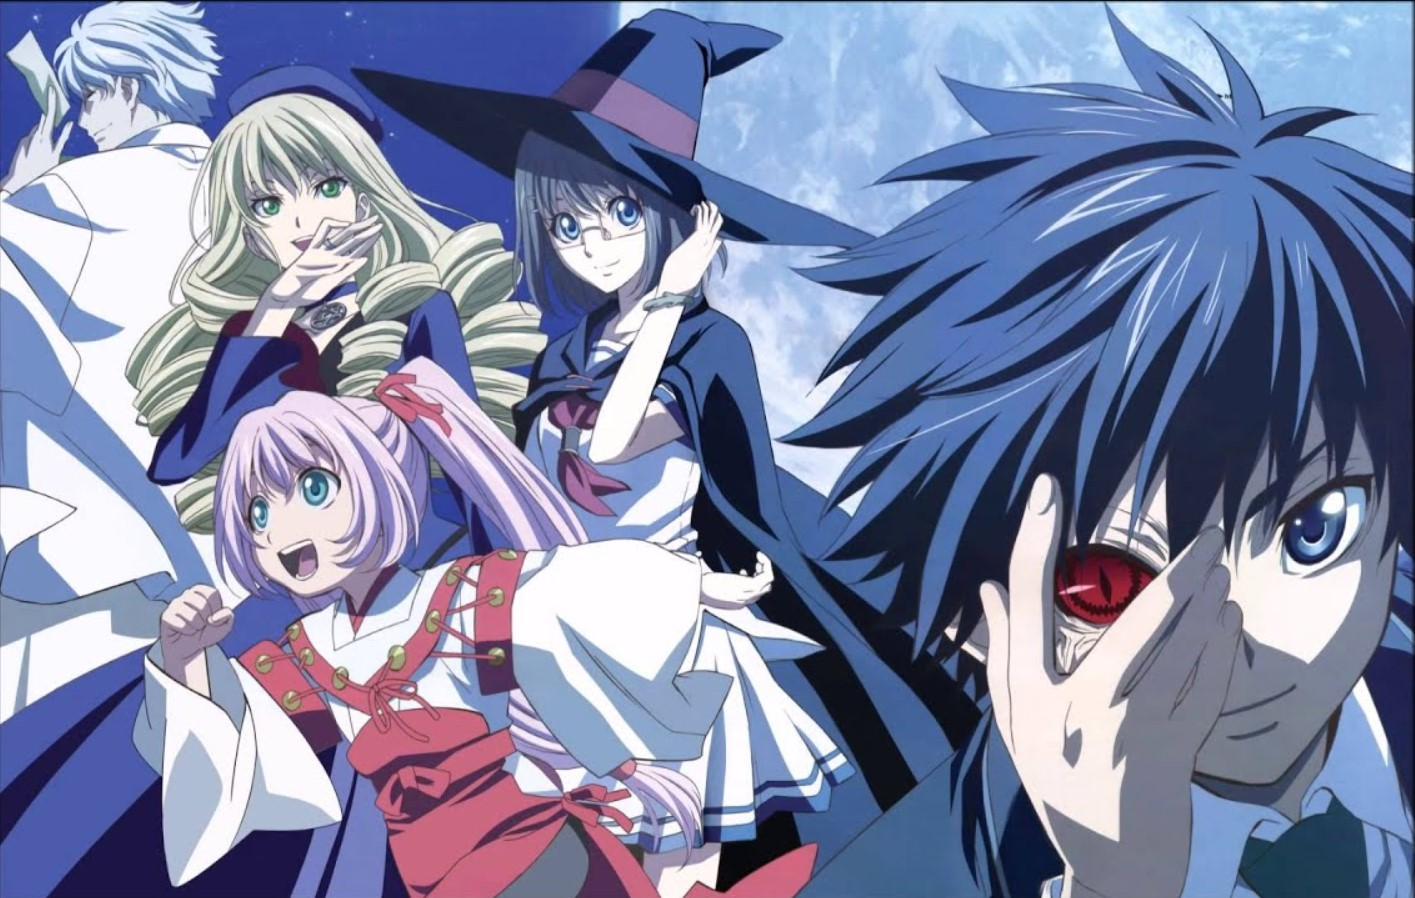 Best Witch Anime!